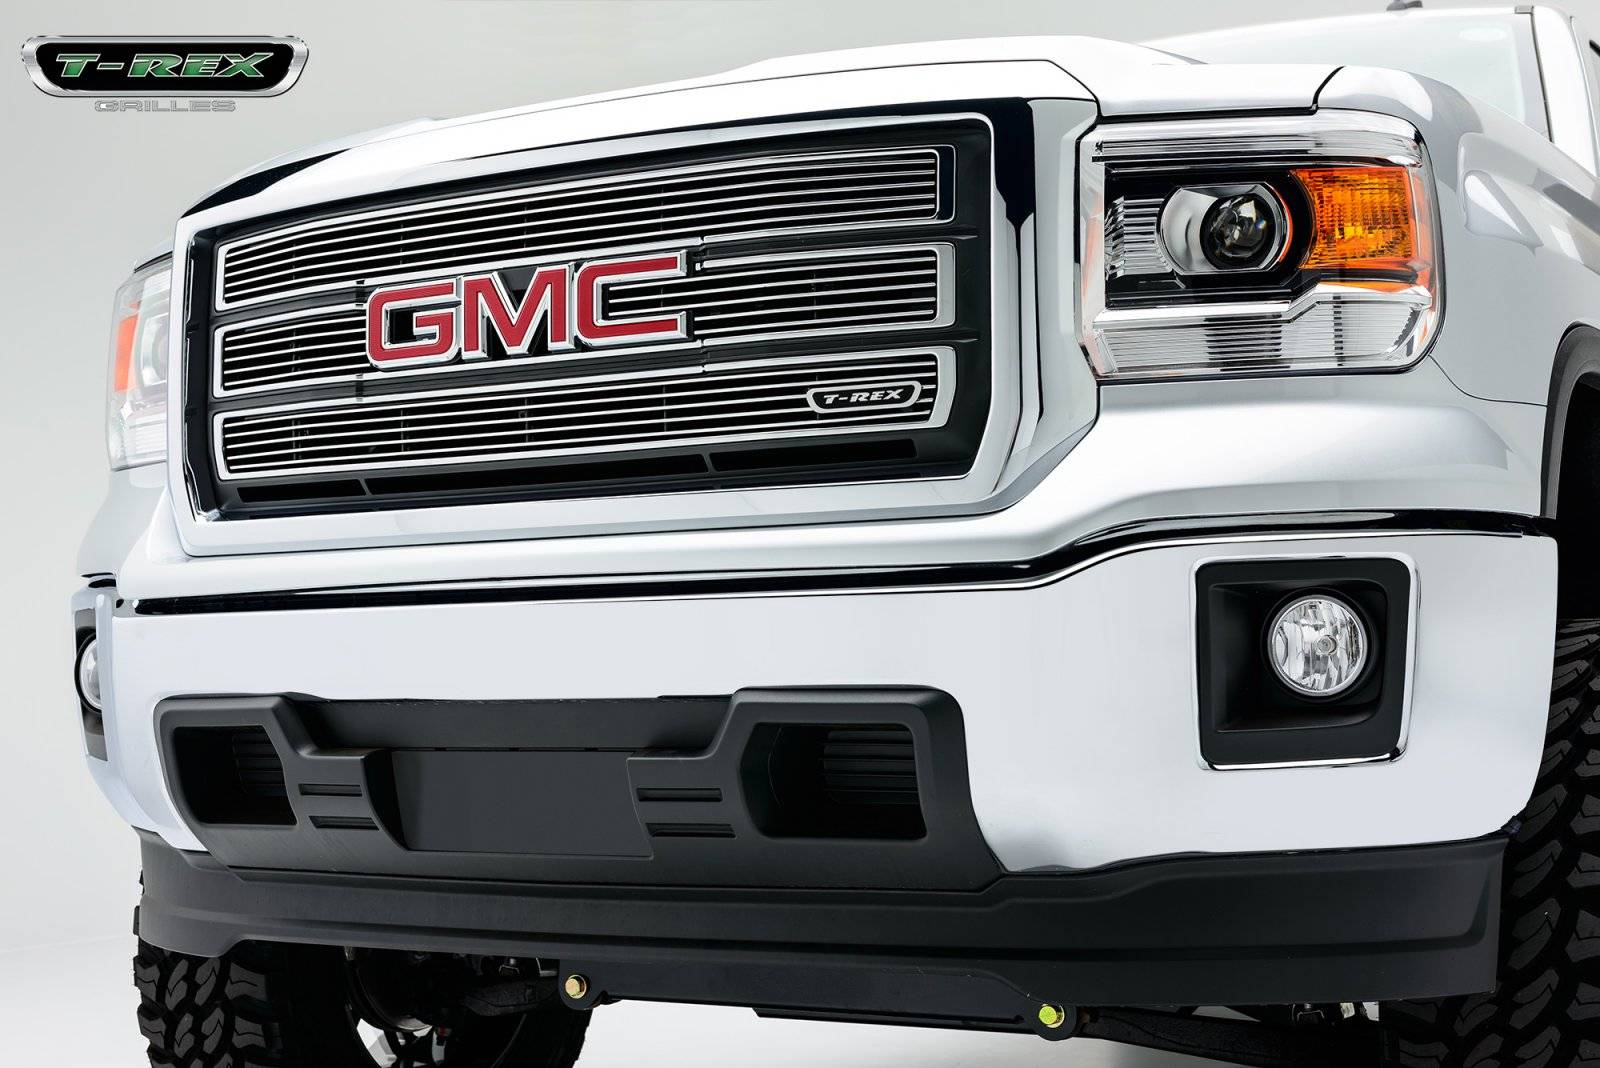 GMC Sierra Billet Grille, Main, Overlay, 4 Pc's, Polished - Pt # 21208